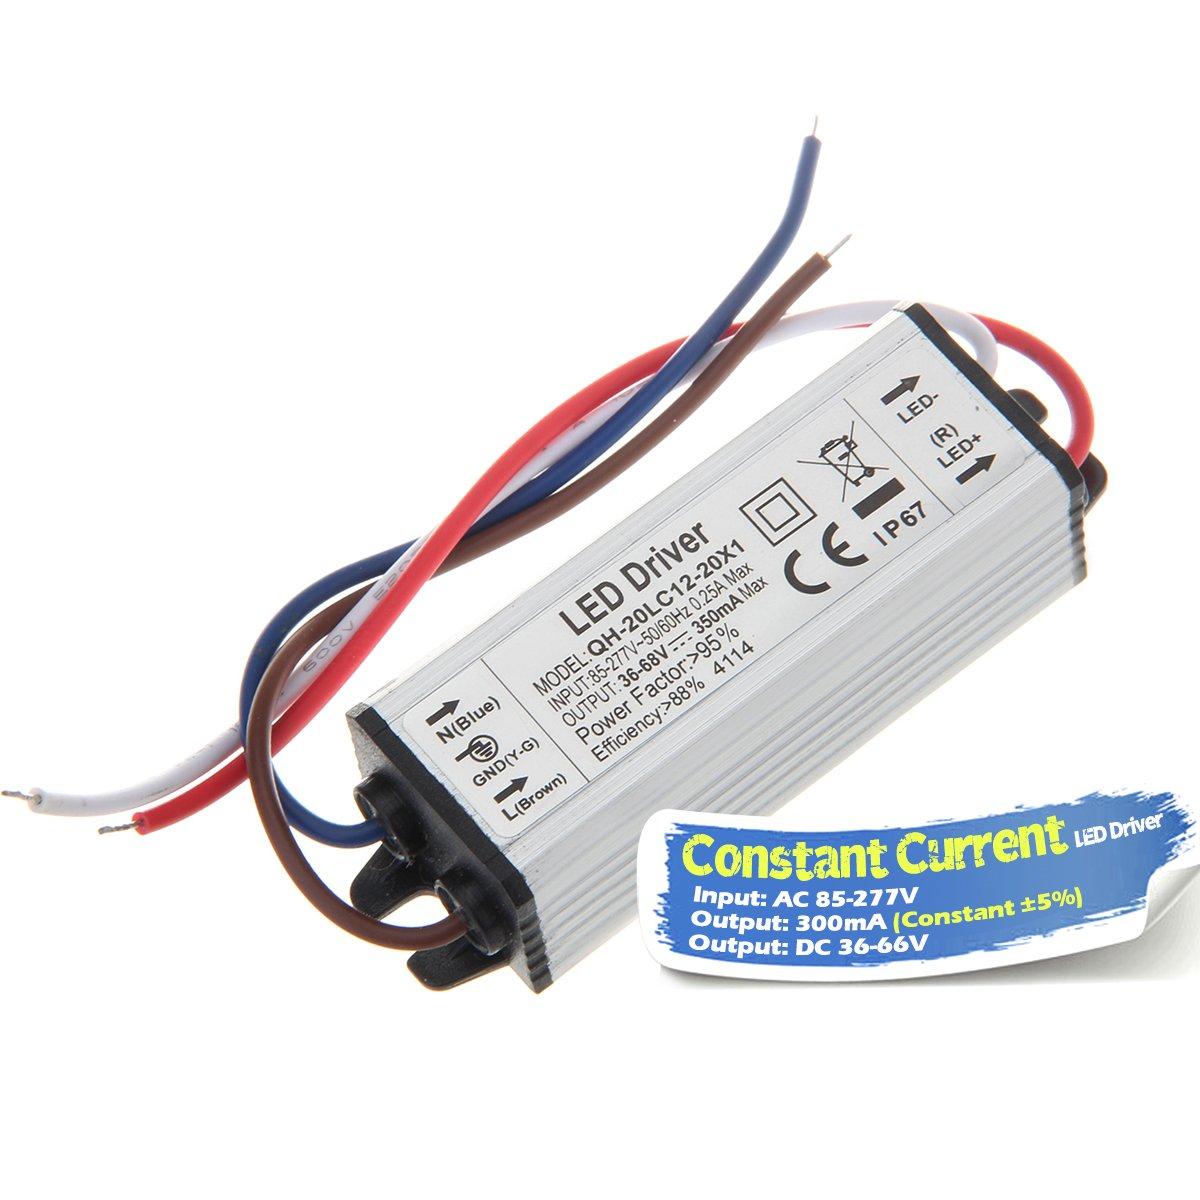 Chanzon Led Driver 300ma Constant Current Output 36v 66v In85 Simple Dc To Ac Converter Circuit Diagram 277v 12 20x1w 12w 15w 18w 20w Ip67 Waterproof High Power Supply 300 Ma Lighting